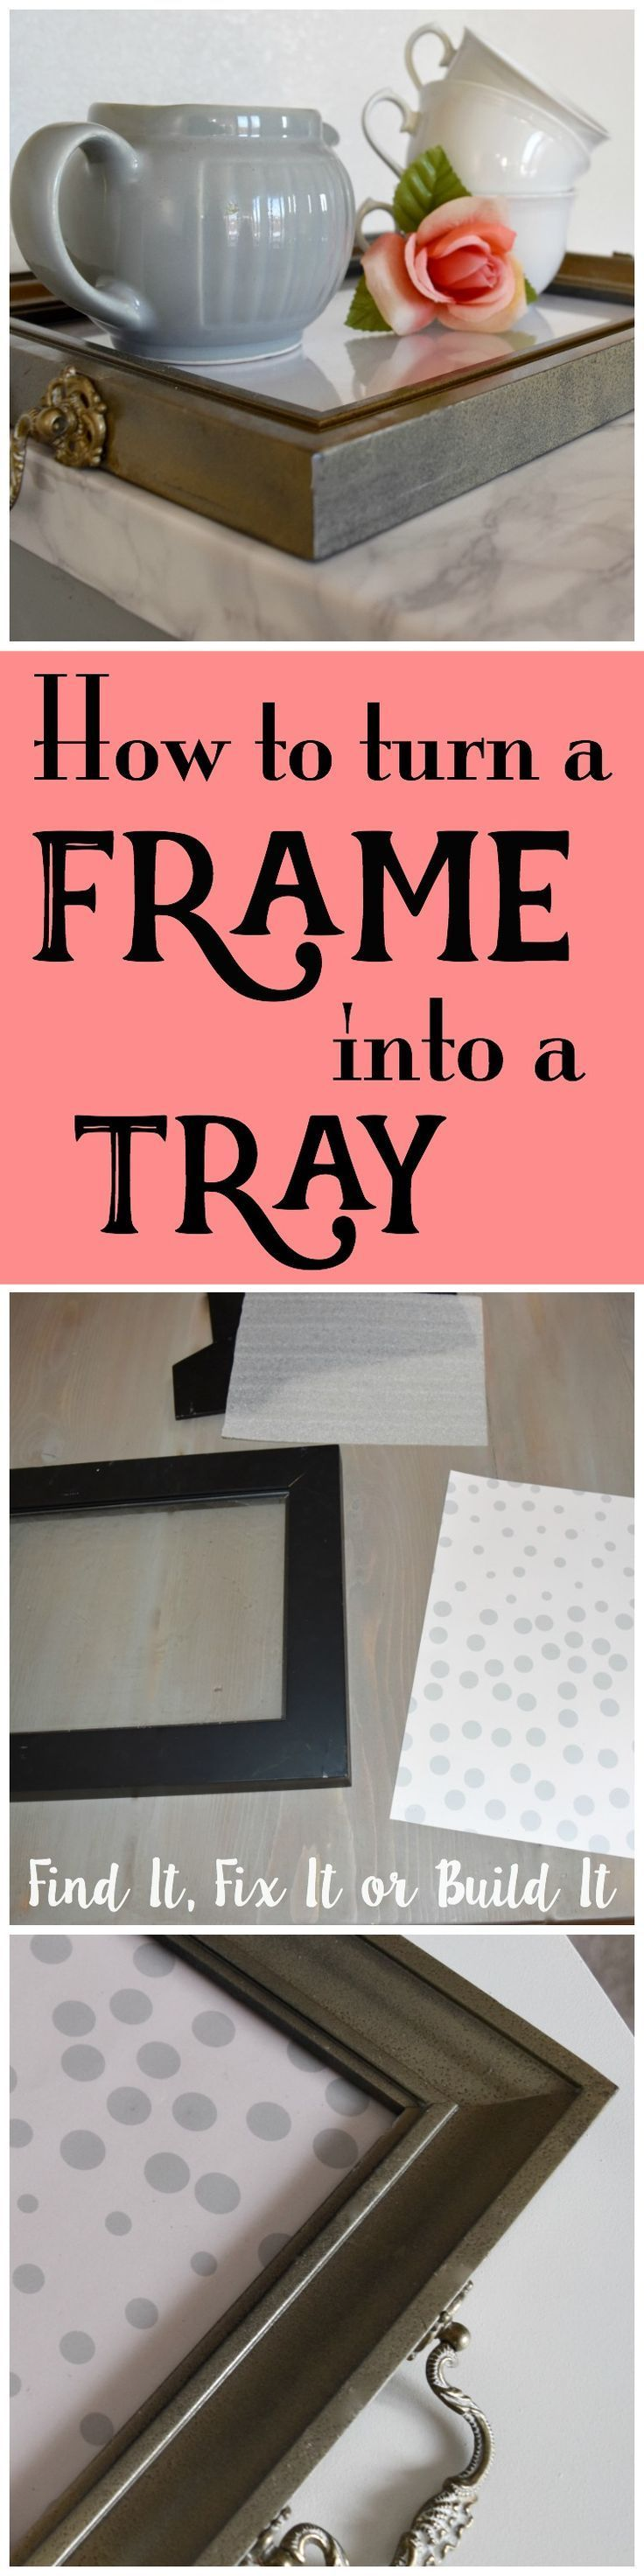 How to turn a frame into a